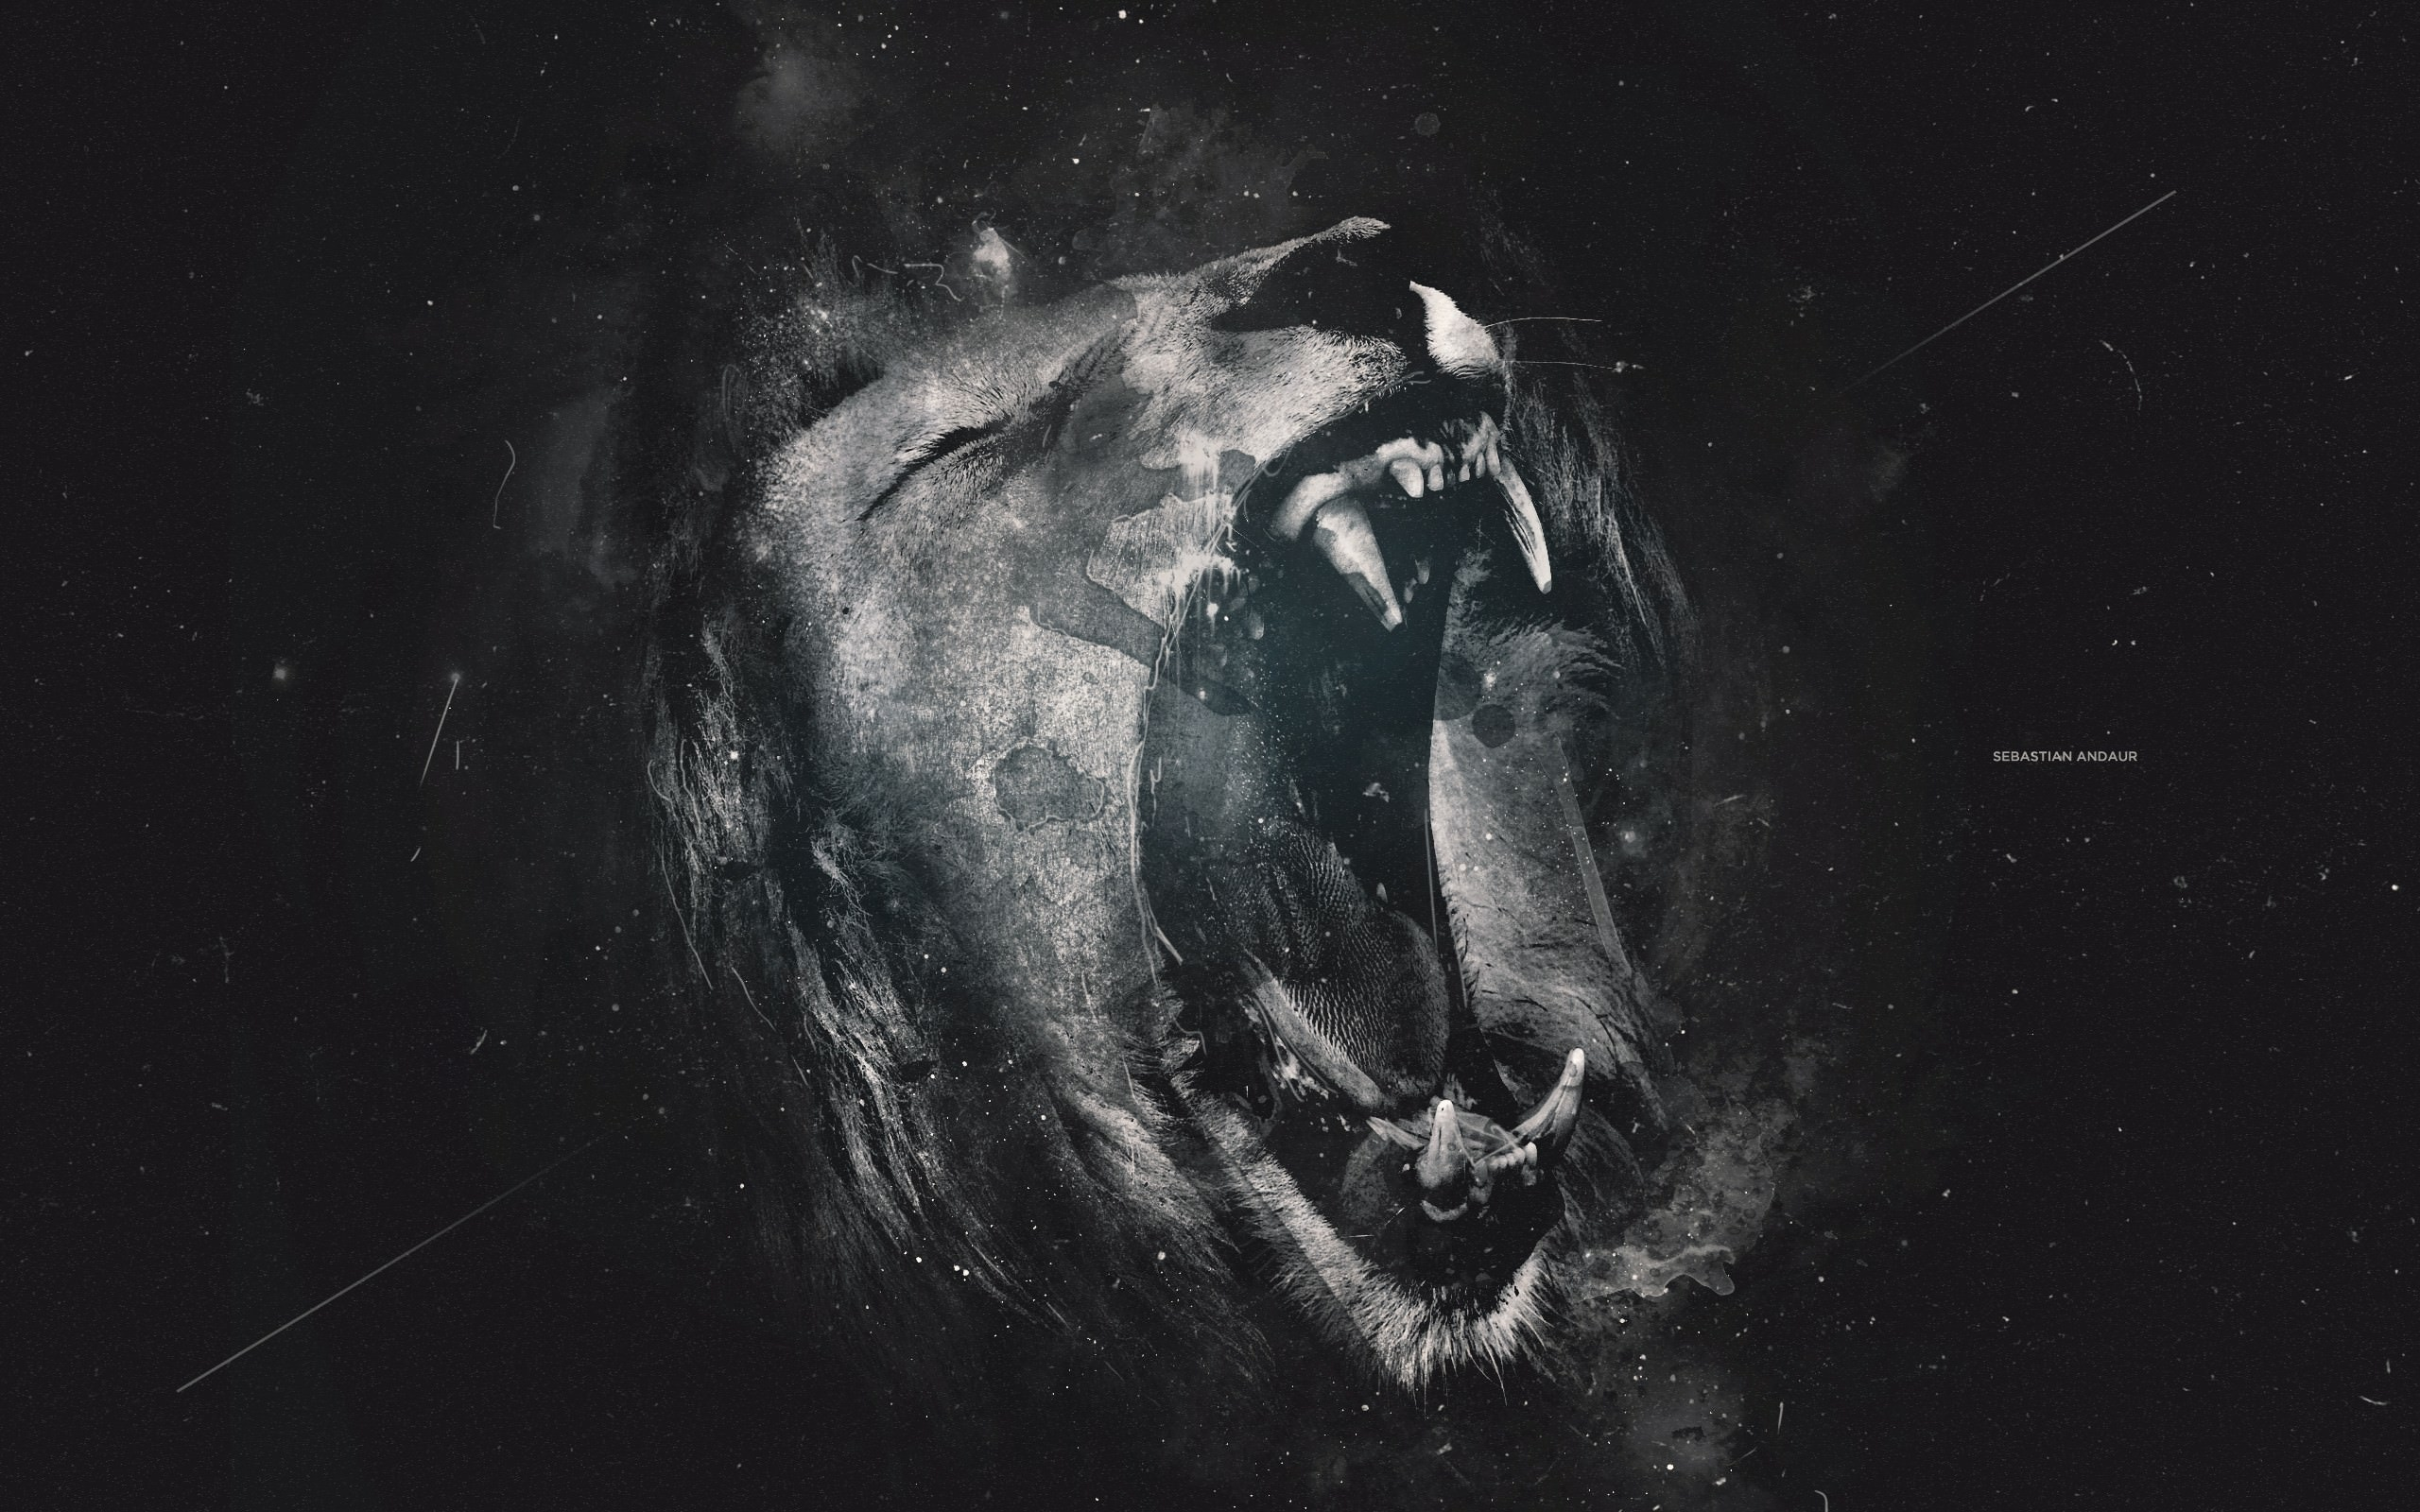 black lion wallpaper - wallpapersafari